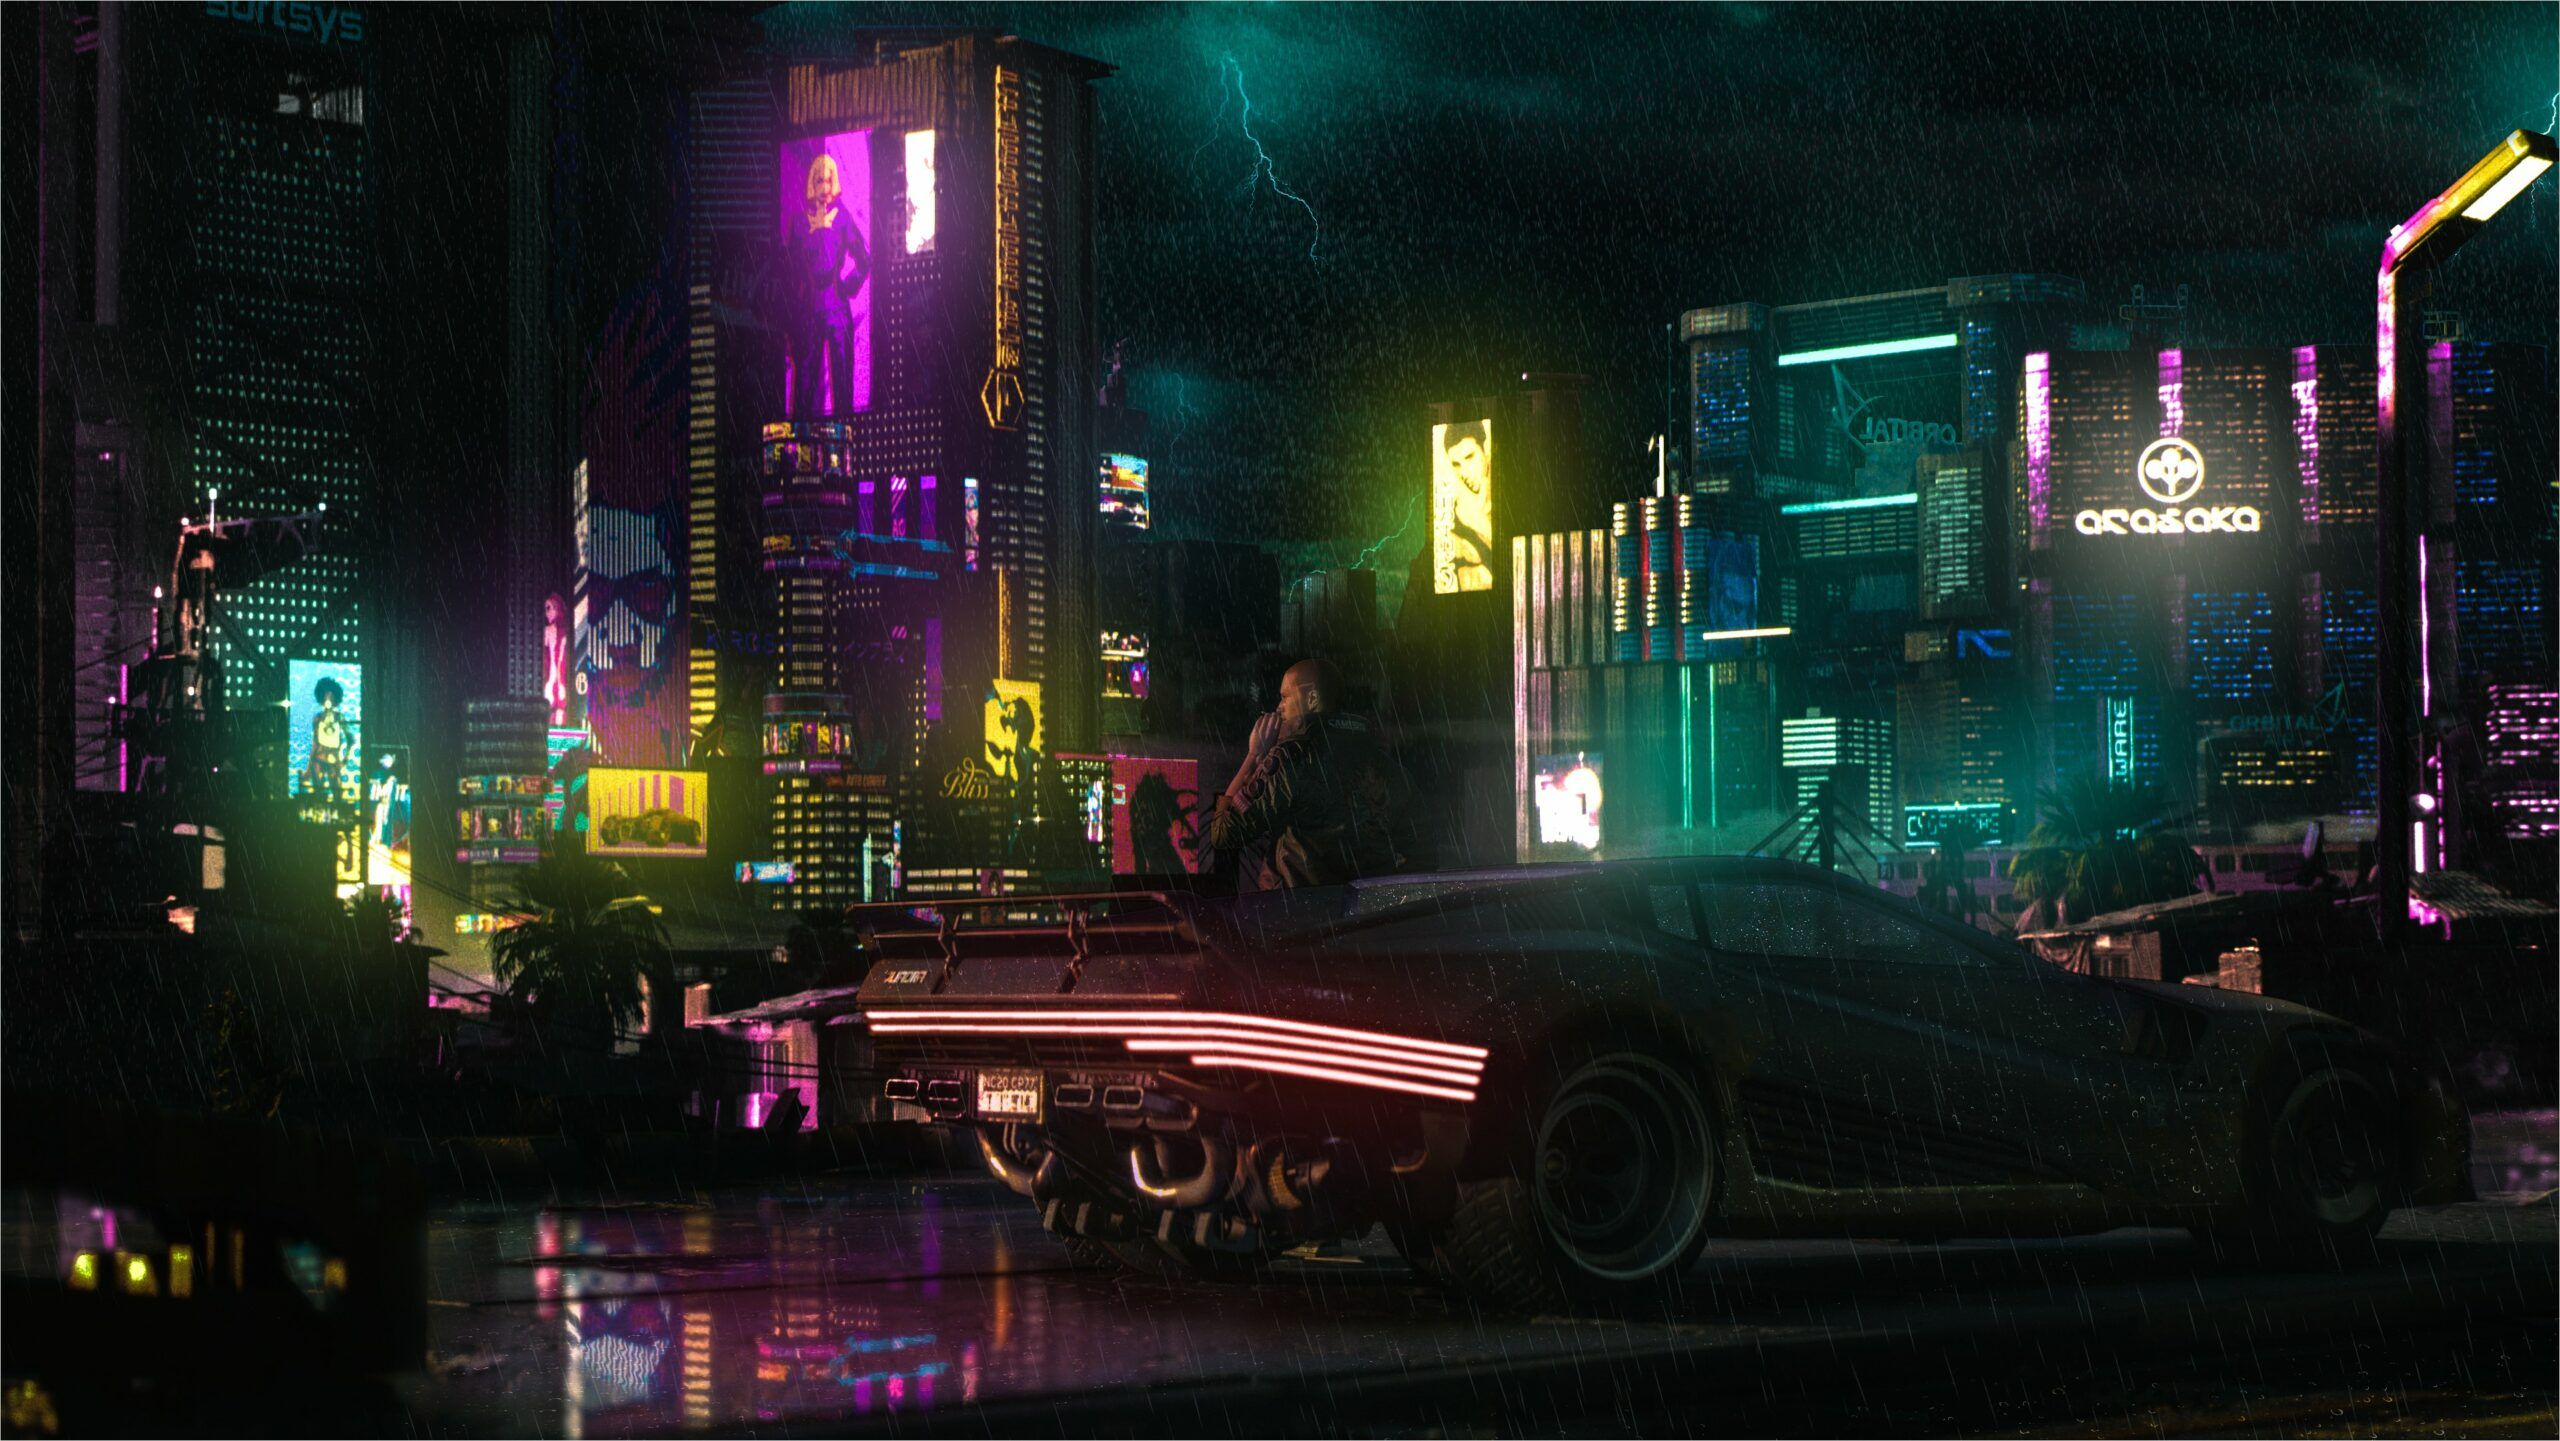 4k Wallpaper Cyber Punk в 2020 г